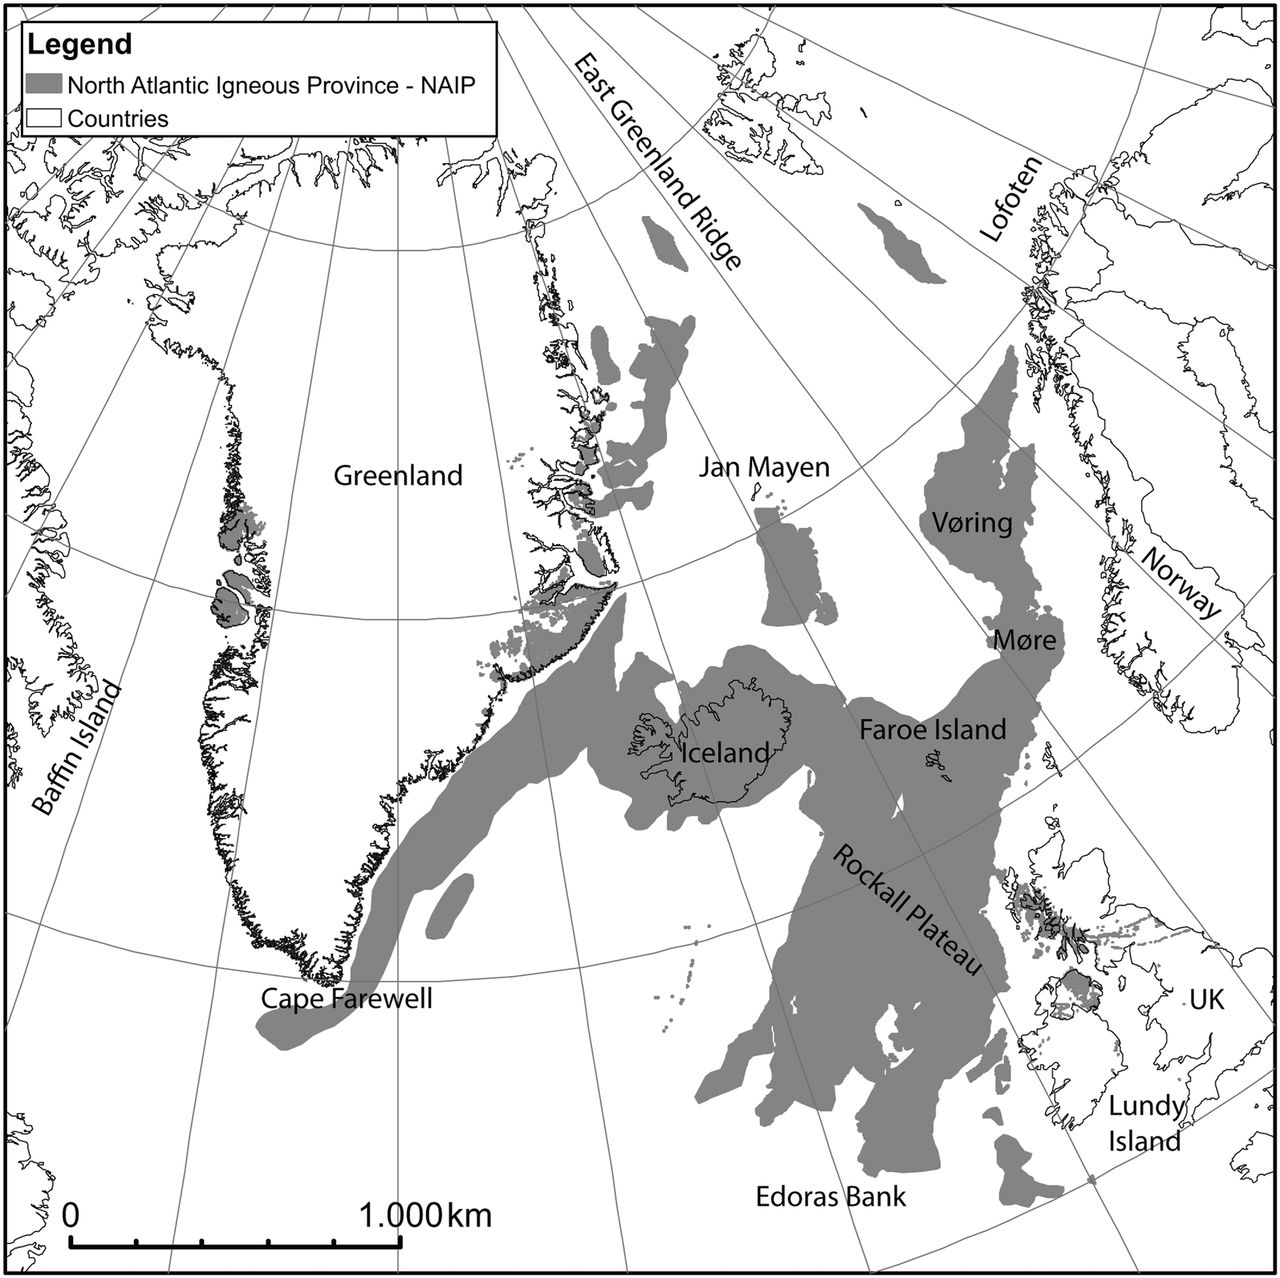 1280x1278 Regional Distribution Of Volcanism Within The North Atlantic